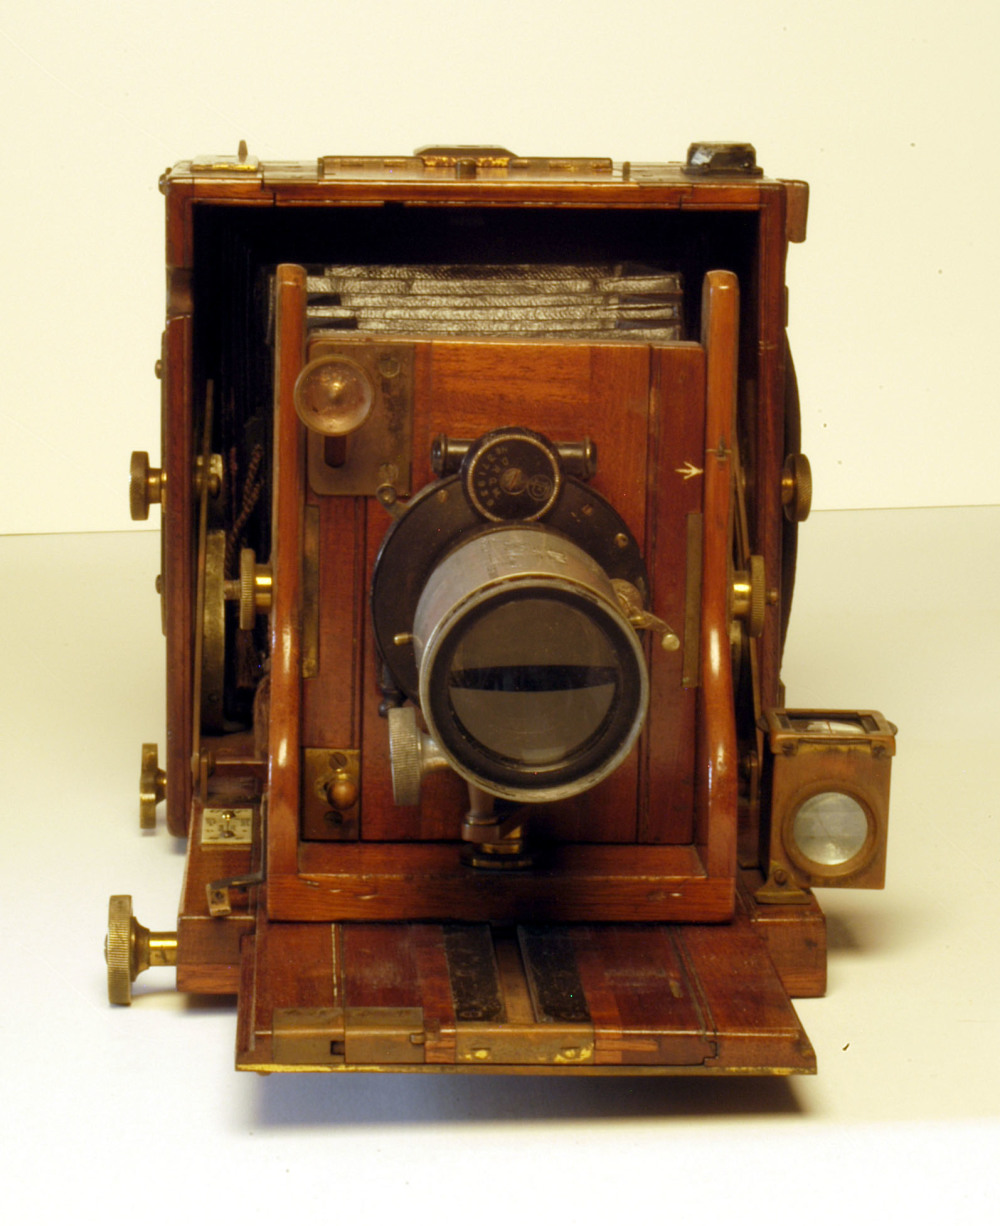 preview image for Archaeological Folding Quarter-Plate Camera and Kit owned by T. E. Lawrence, by J. H. Dallmeyer, London, 1910